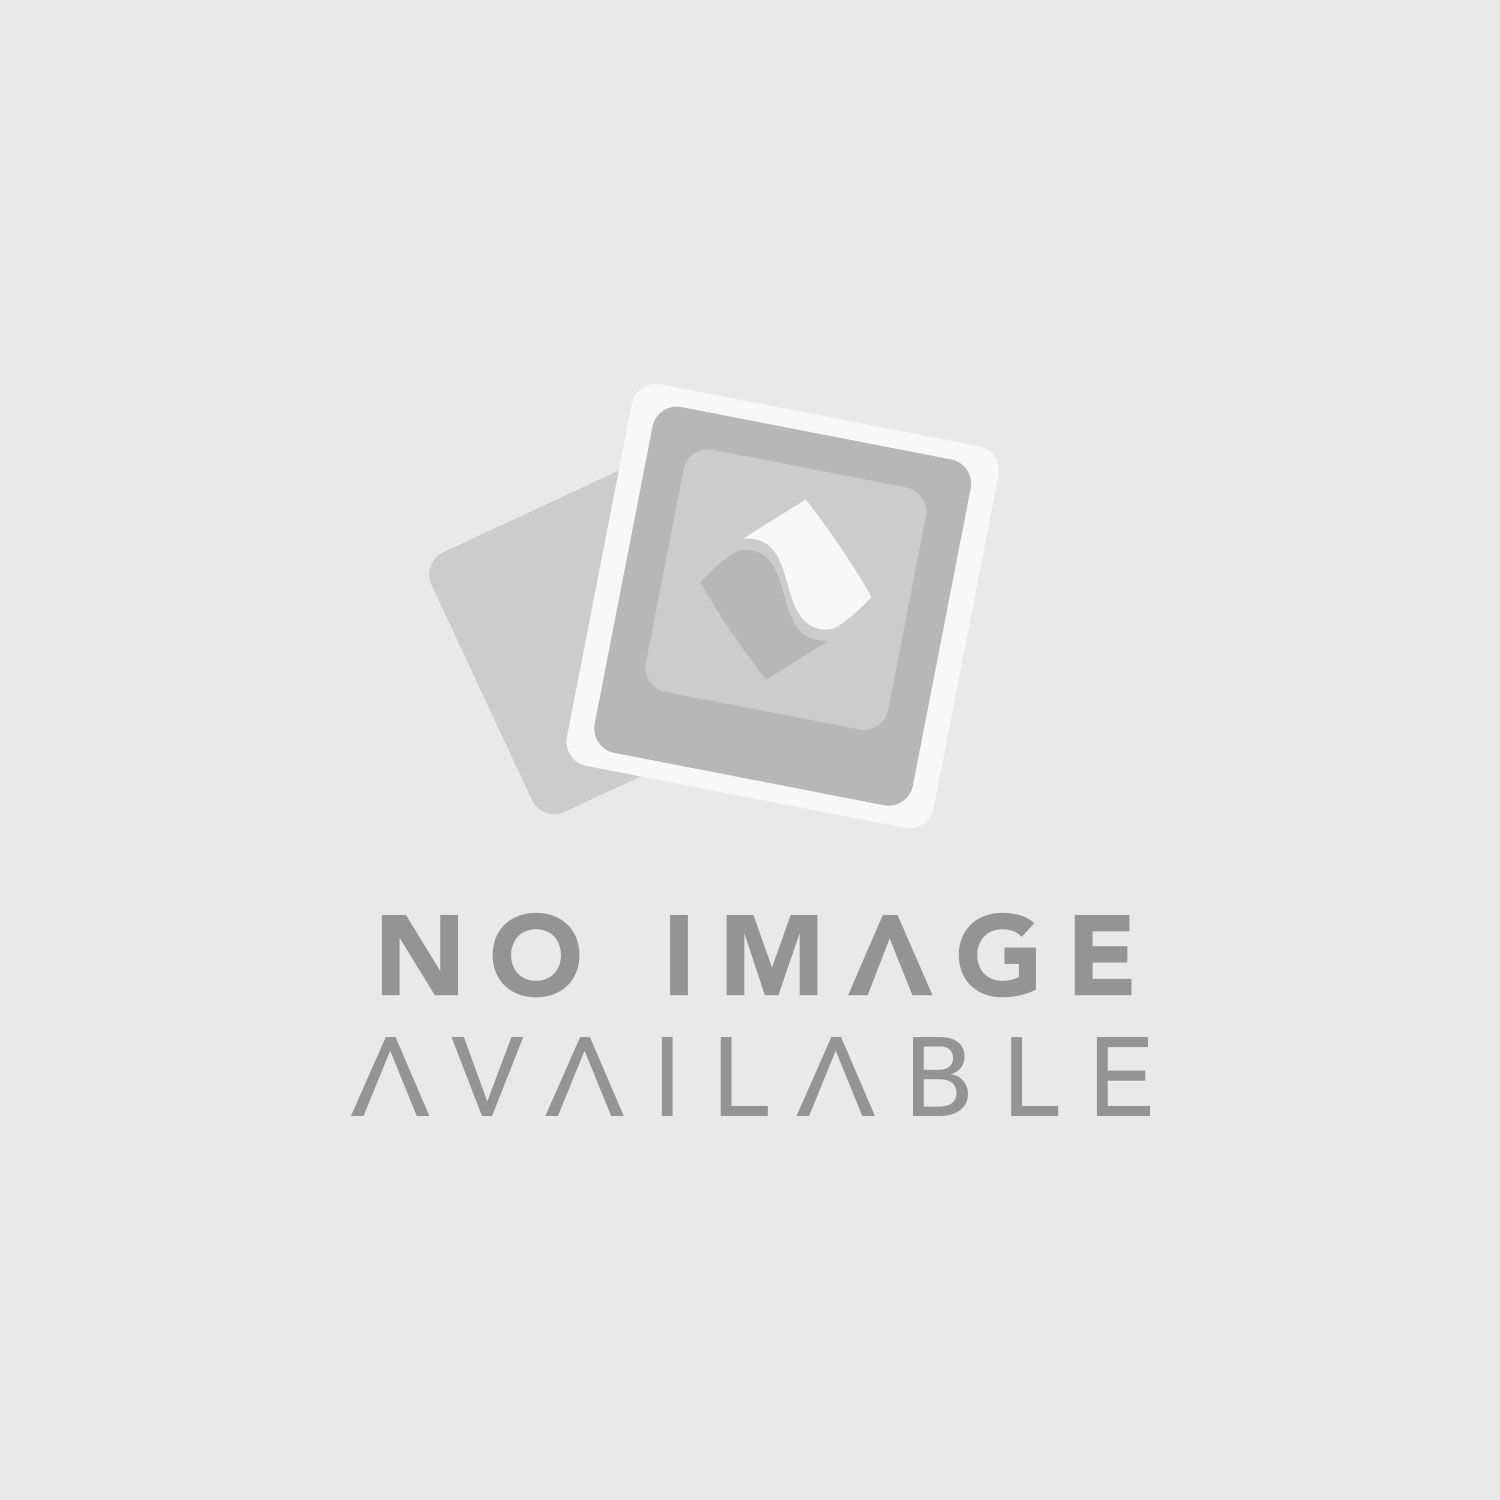 Antari S-200X Silent Snow Machine